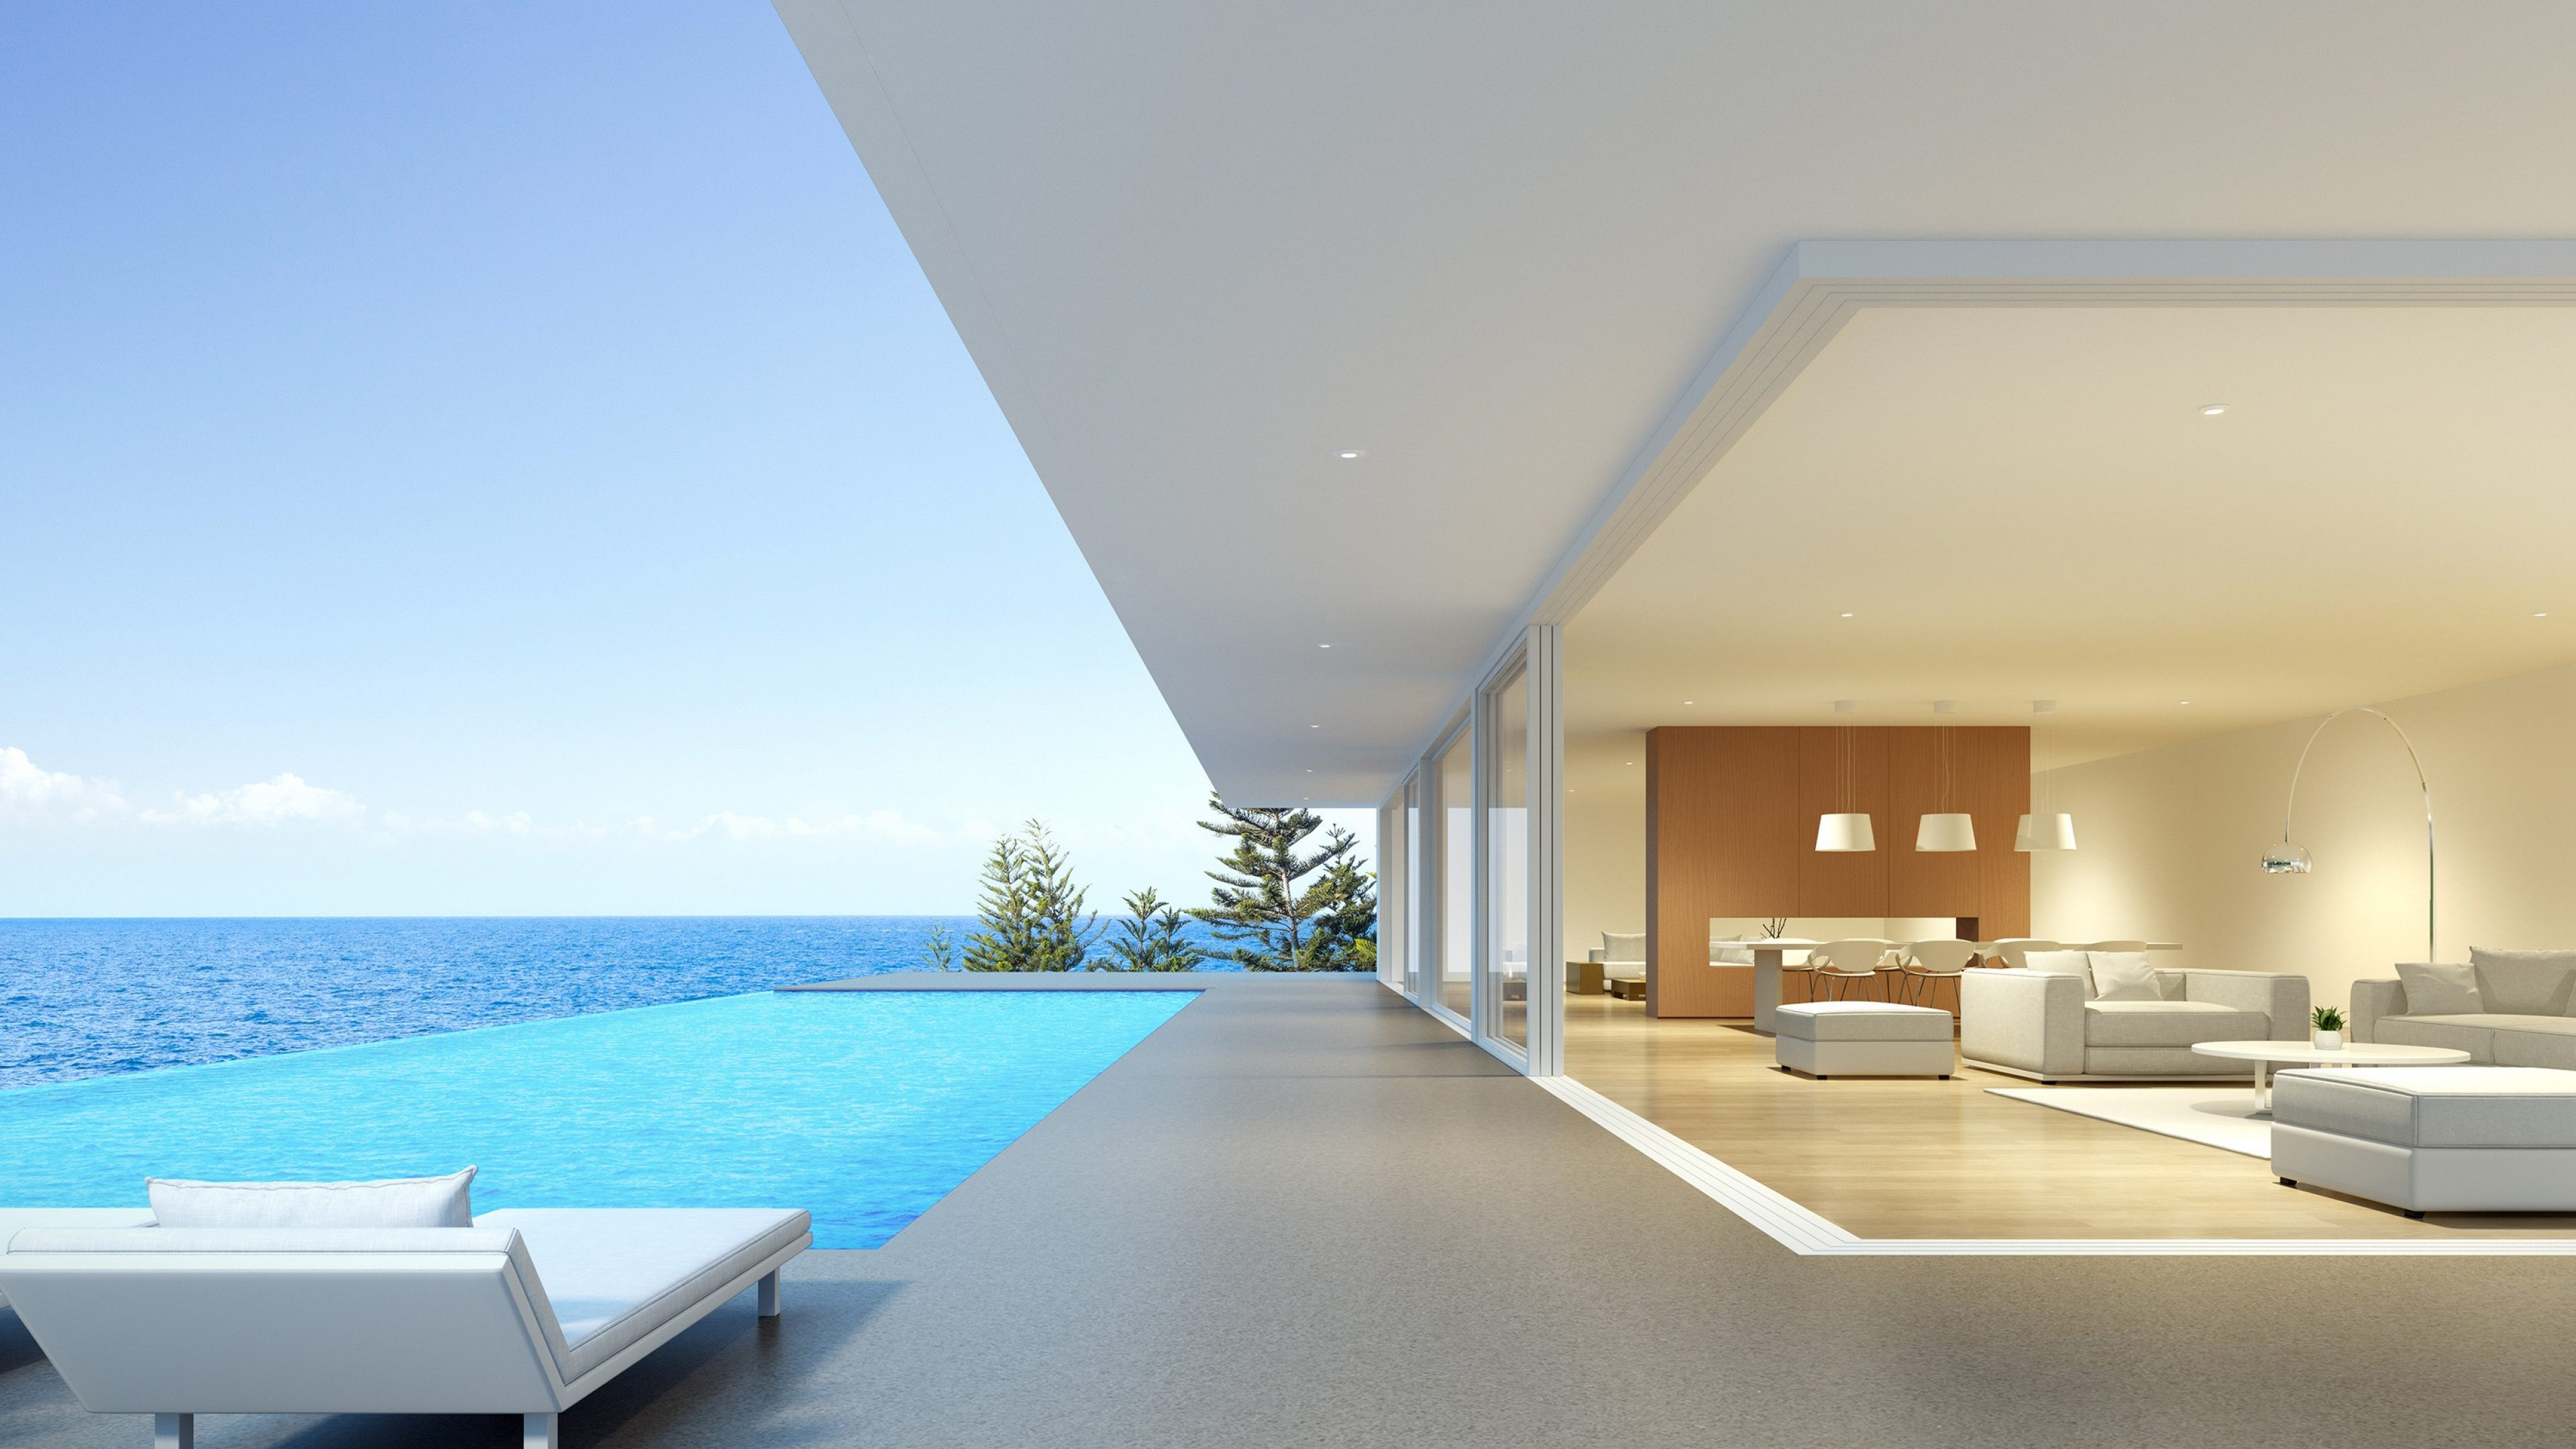 Perspective of modern luxury building with terrace and swimming infinity pool on sea view background,Idea of family vacation. 3D rendering.